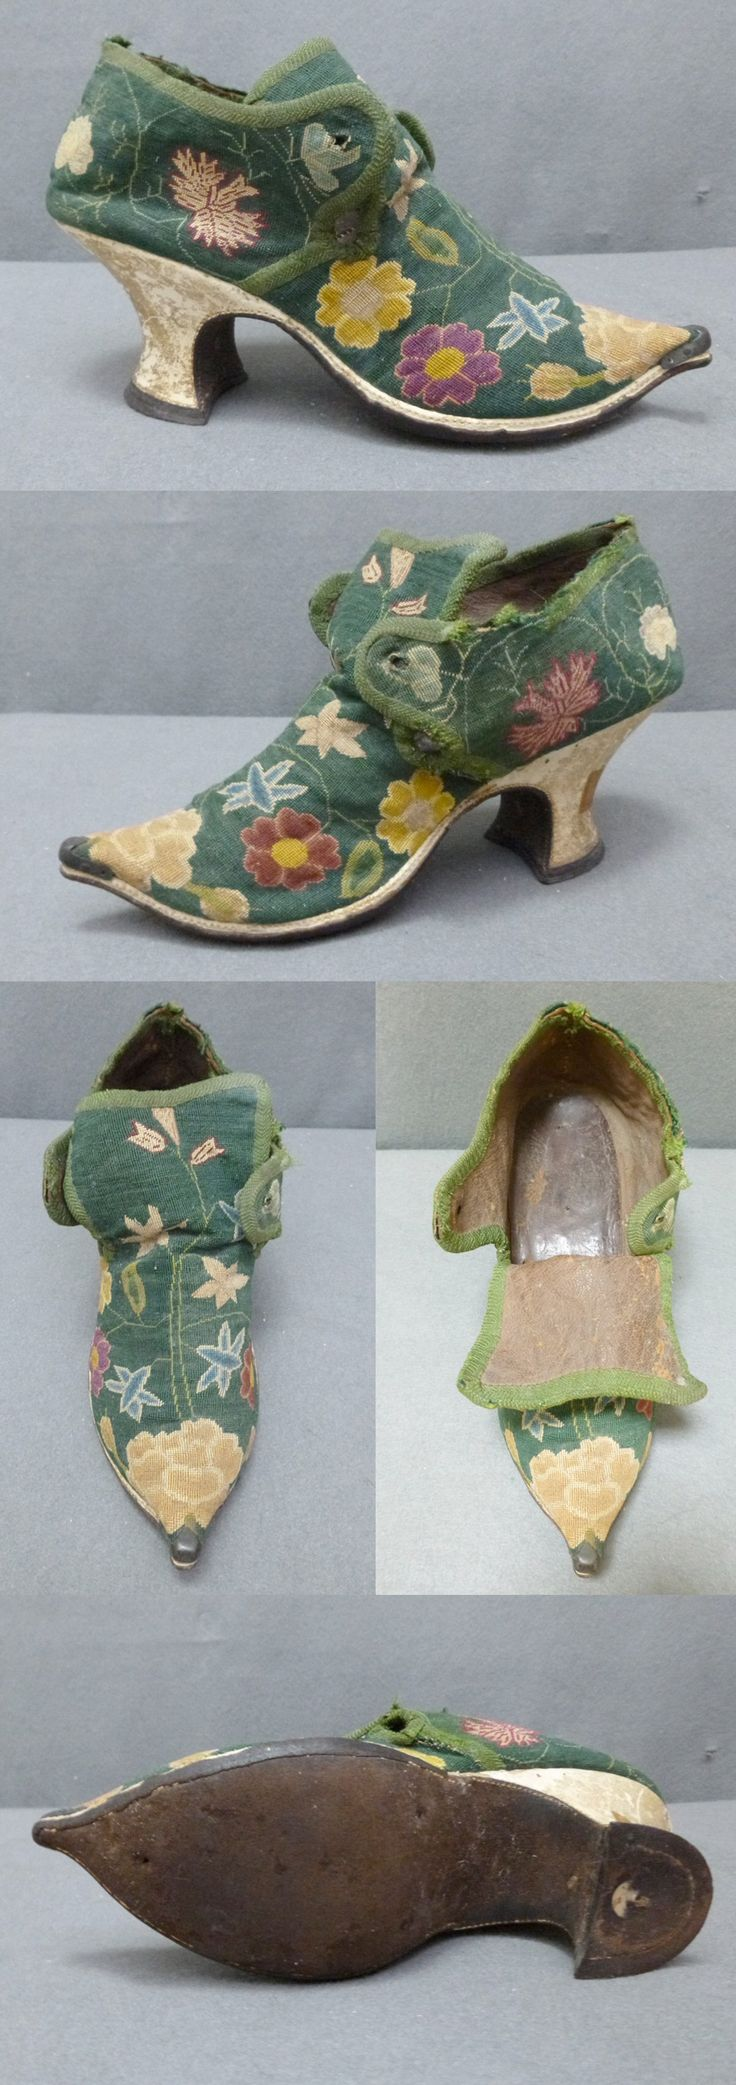 Embroidered Shoe 1730's, Holland, Very fine tent stitch uppers, probably embridered by the owner. Unusual metal toe cap. finely embroidered with jonquils, roses, pinks and other flowers in crimson, ivory, yellow, pale blue on a mid green ground, the latchets with eyelet hole (for a ribbon), the slightly shaped tongue dipping in the centre, this and the edgings with applied linen braid, lined with brown cotton, the rand of ivory kid, leather straight sole, 8 1/2 in; 22 cm.